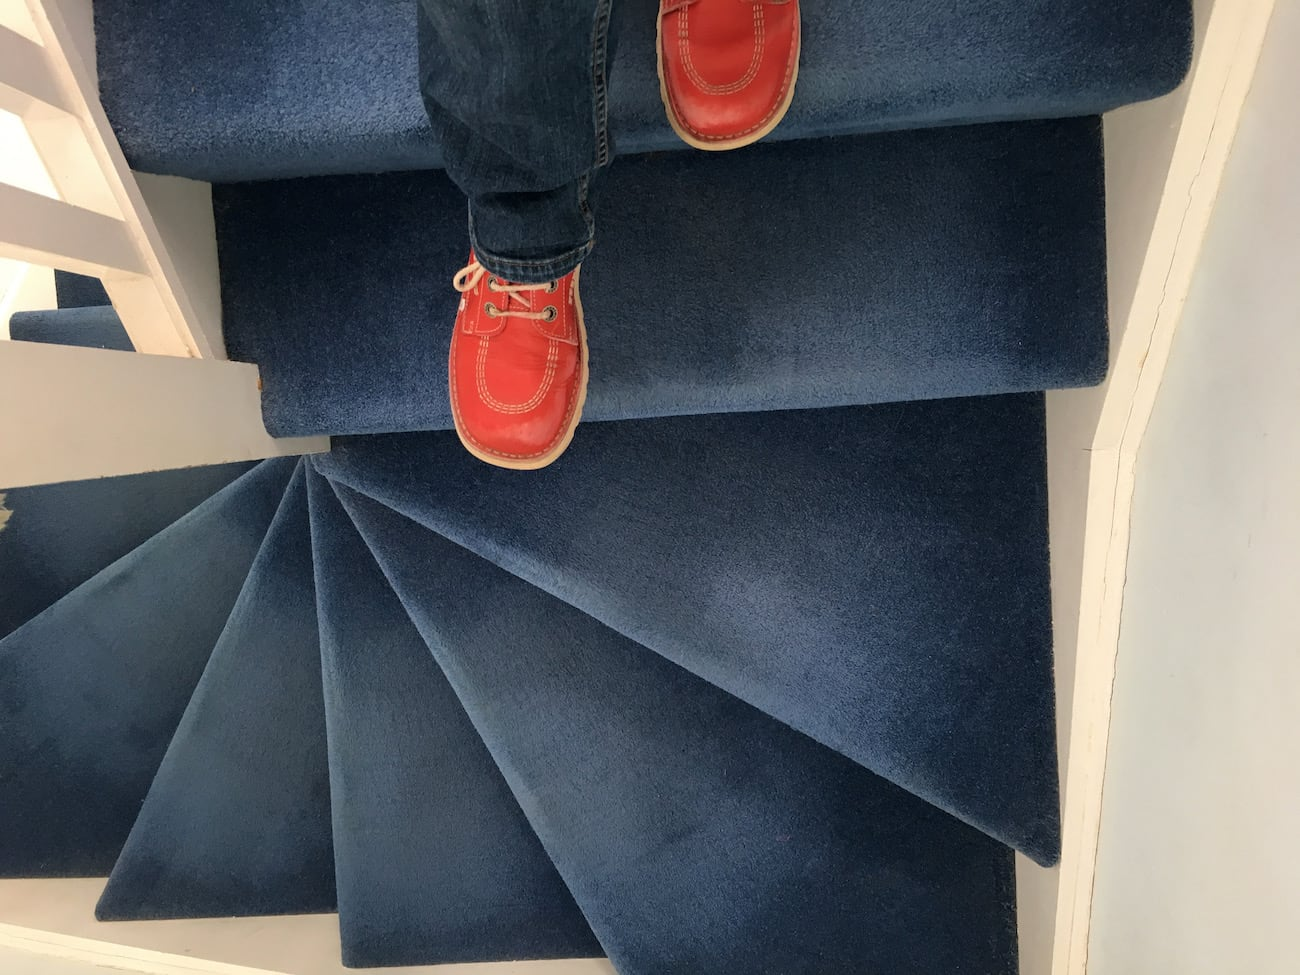 Carpeting On Stairs